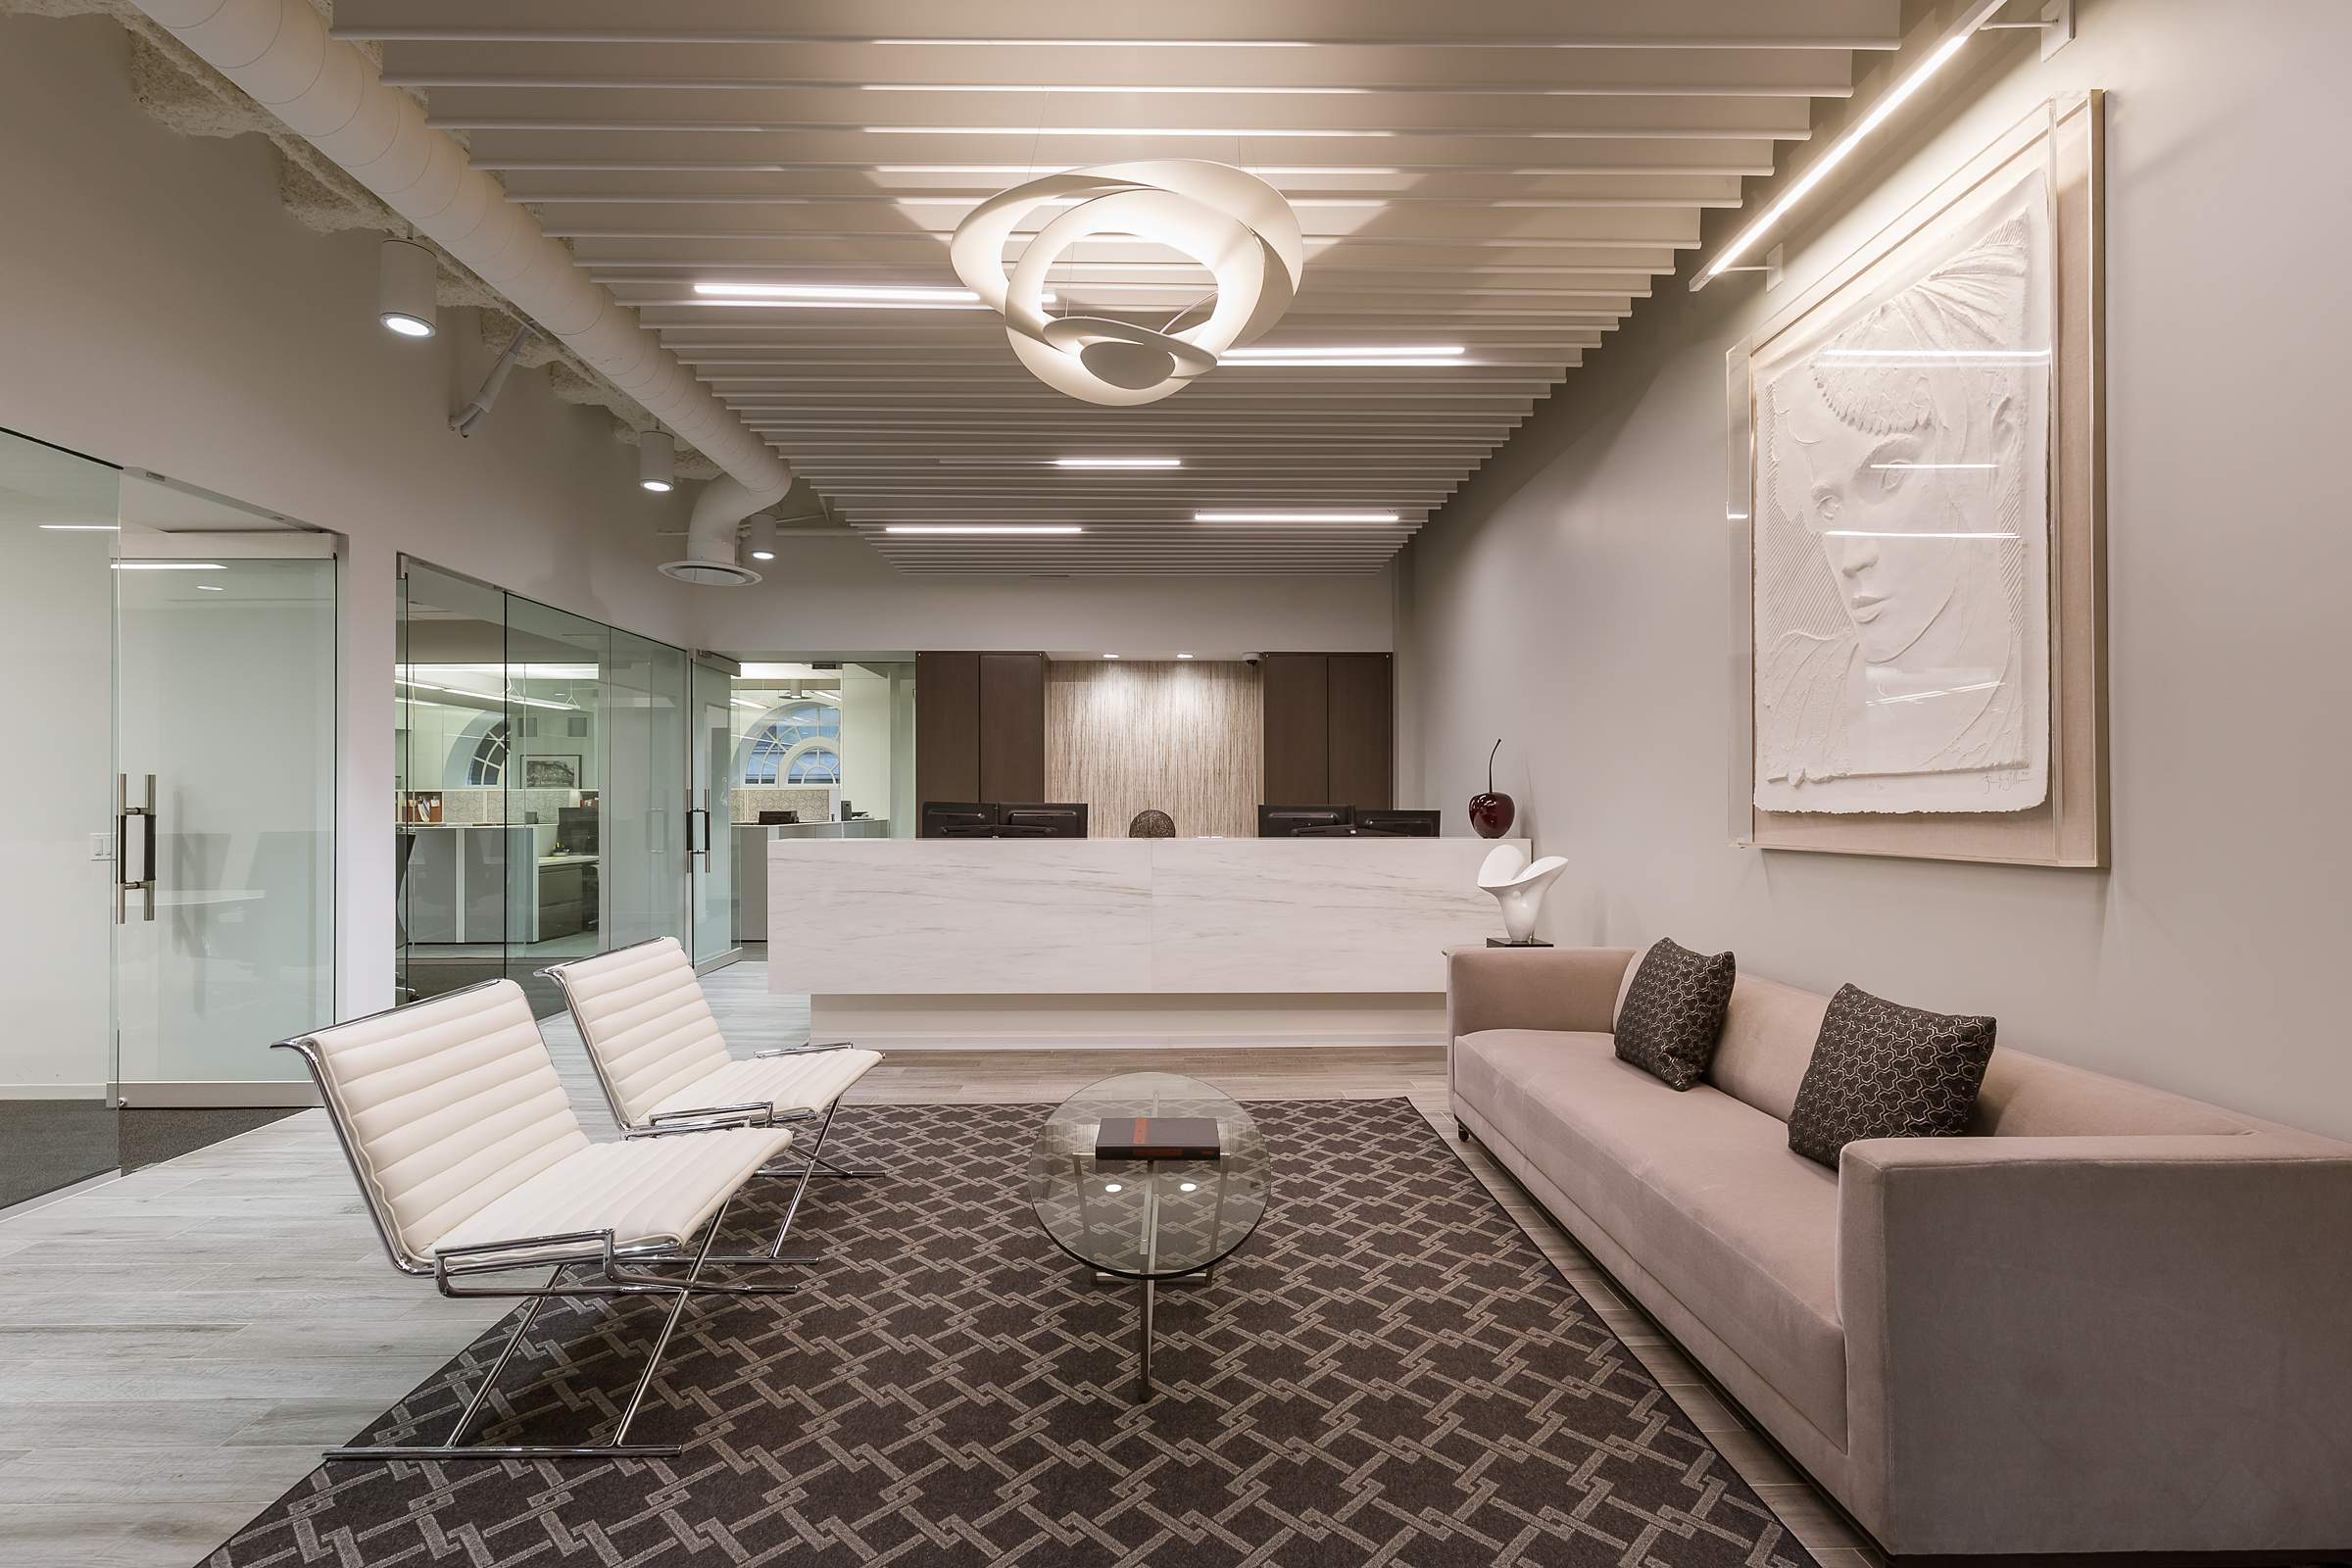 Ankin Law Firm Chicago - Professional Services Office 4K